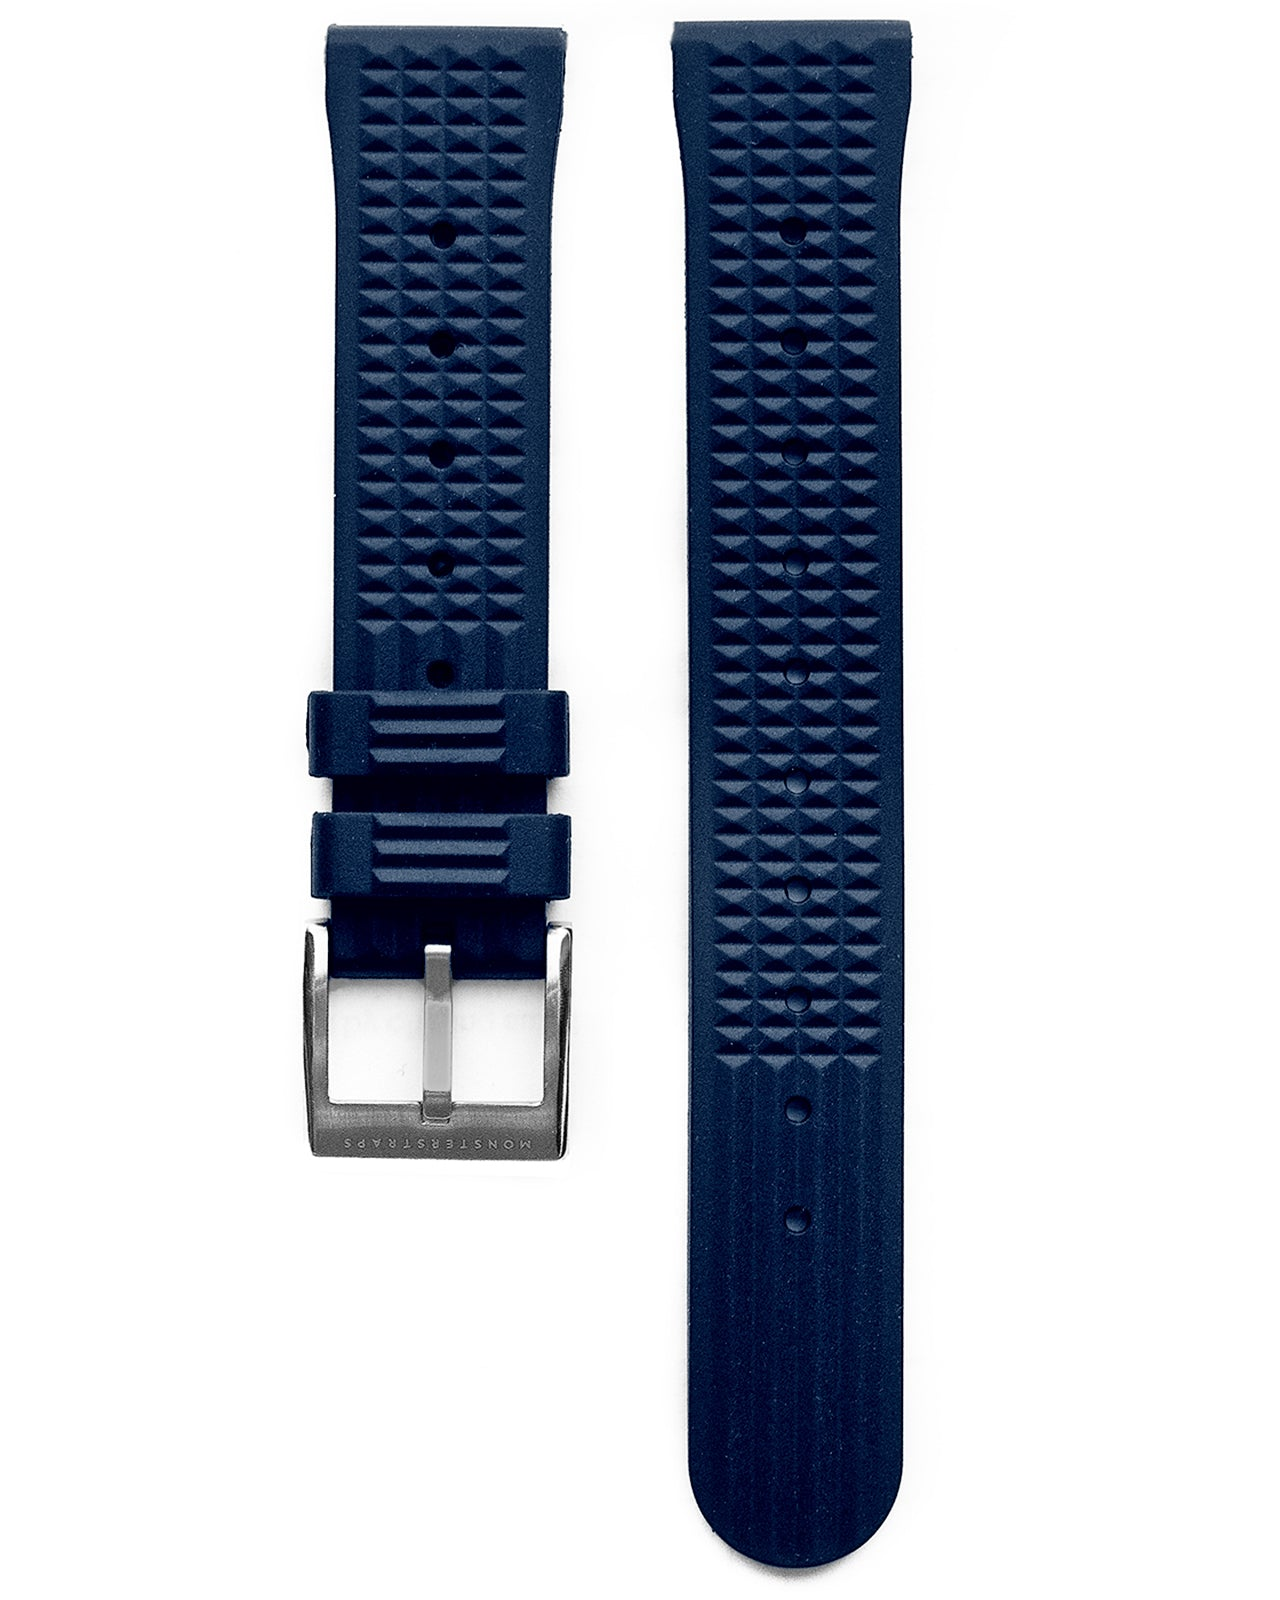 VULCANISED RUBBER - WAFFLE STRAP (NAVY, VINTAGE STYLE)